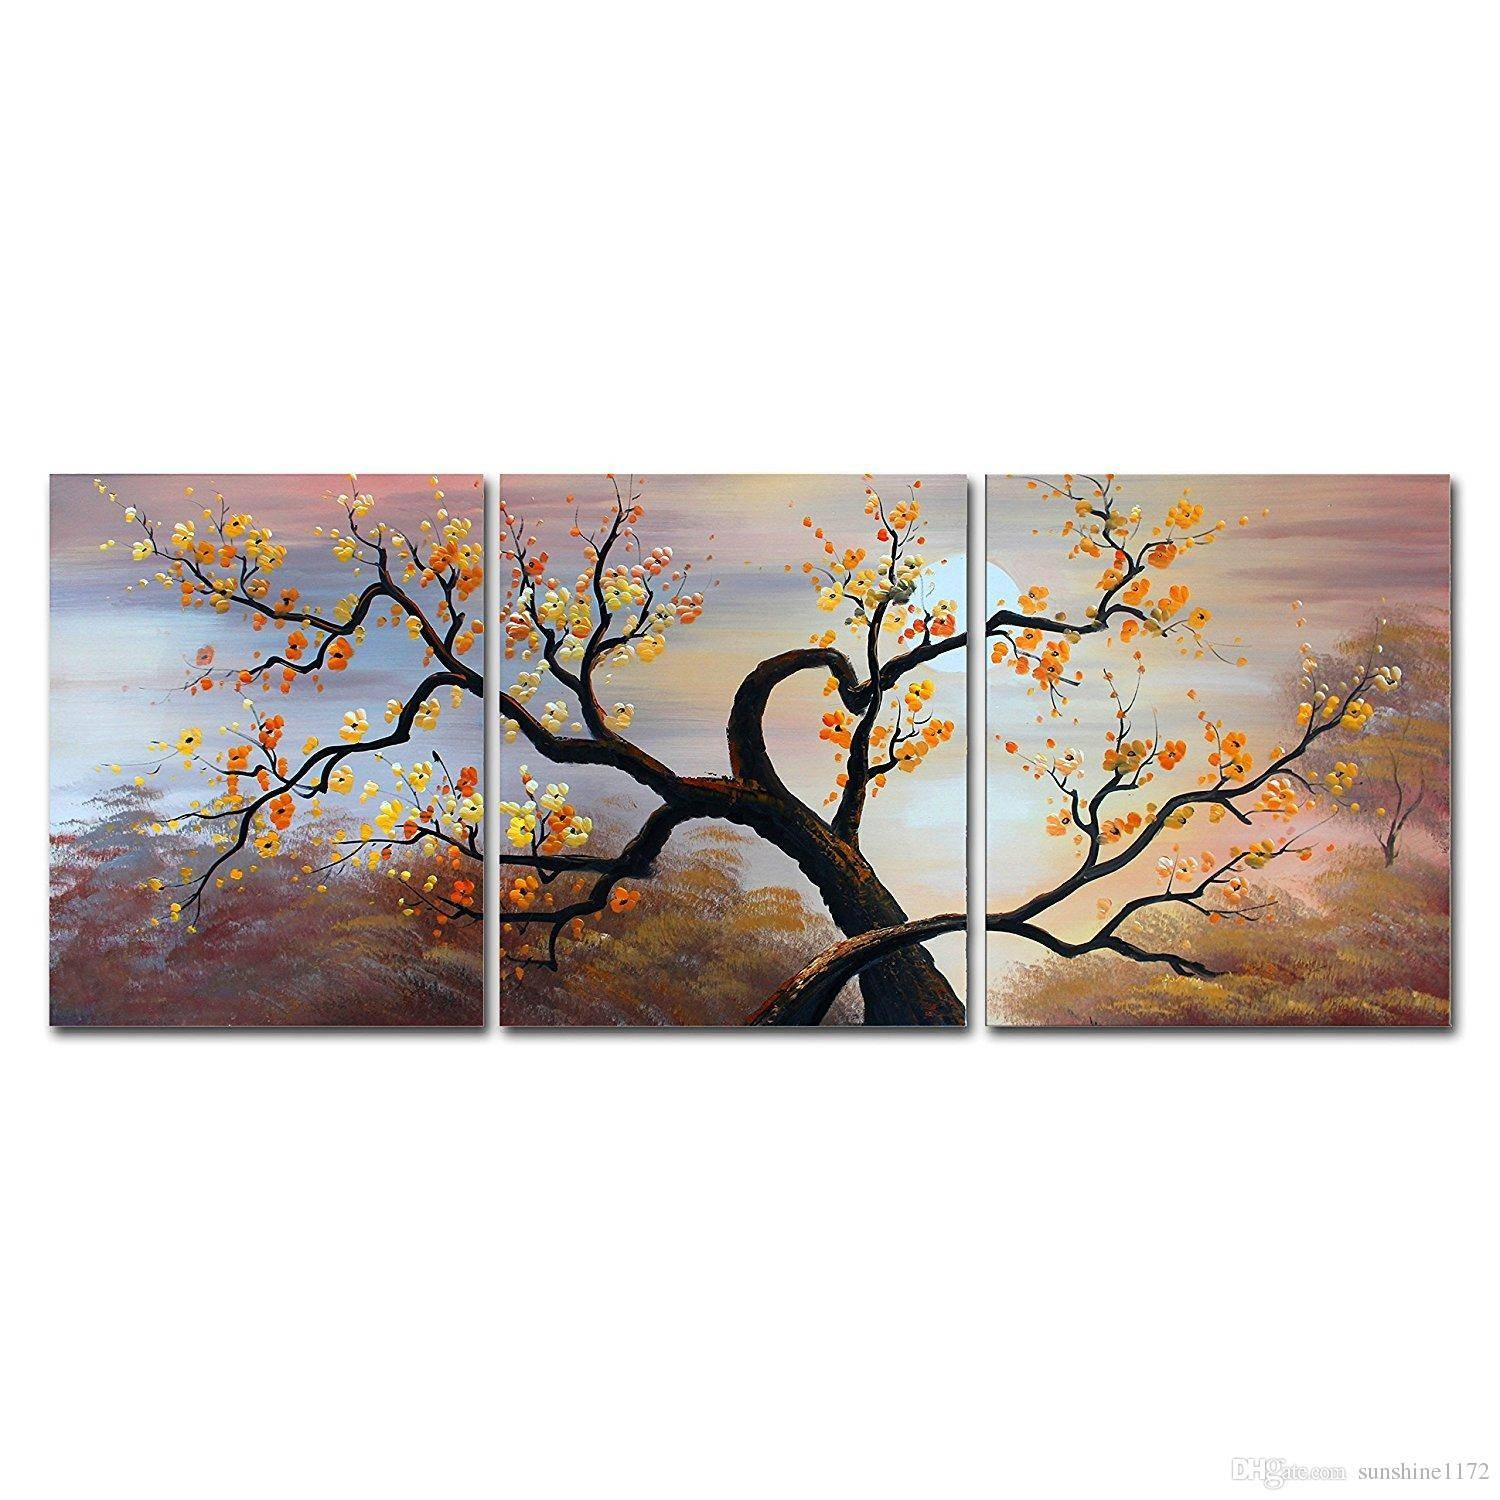 Cherry Blossom Canvas Wall Art Home Decoration Large Landscape Oil Pertaining To Most Current Dinosaur Canvas Wall Art (View 8 of 15)